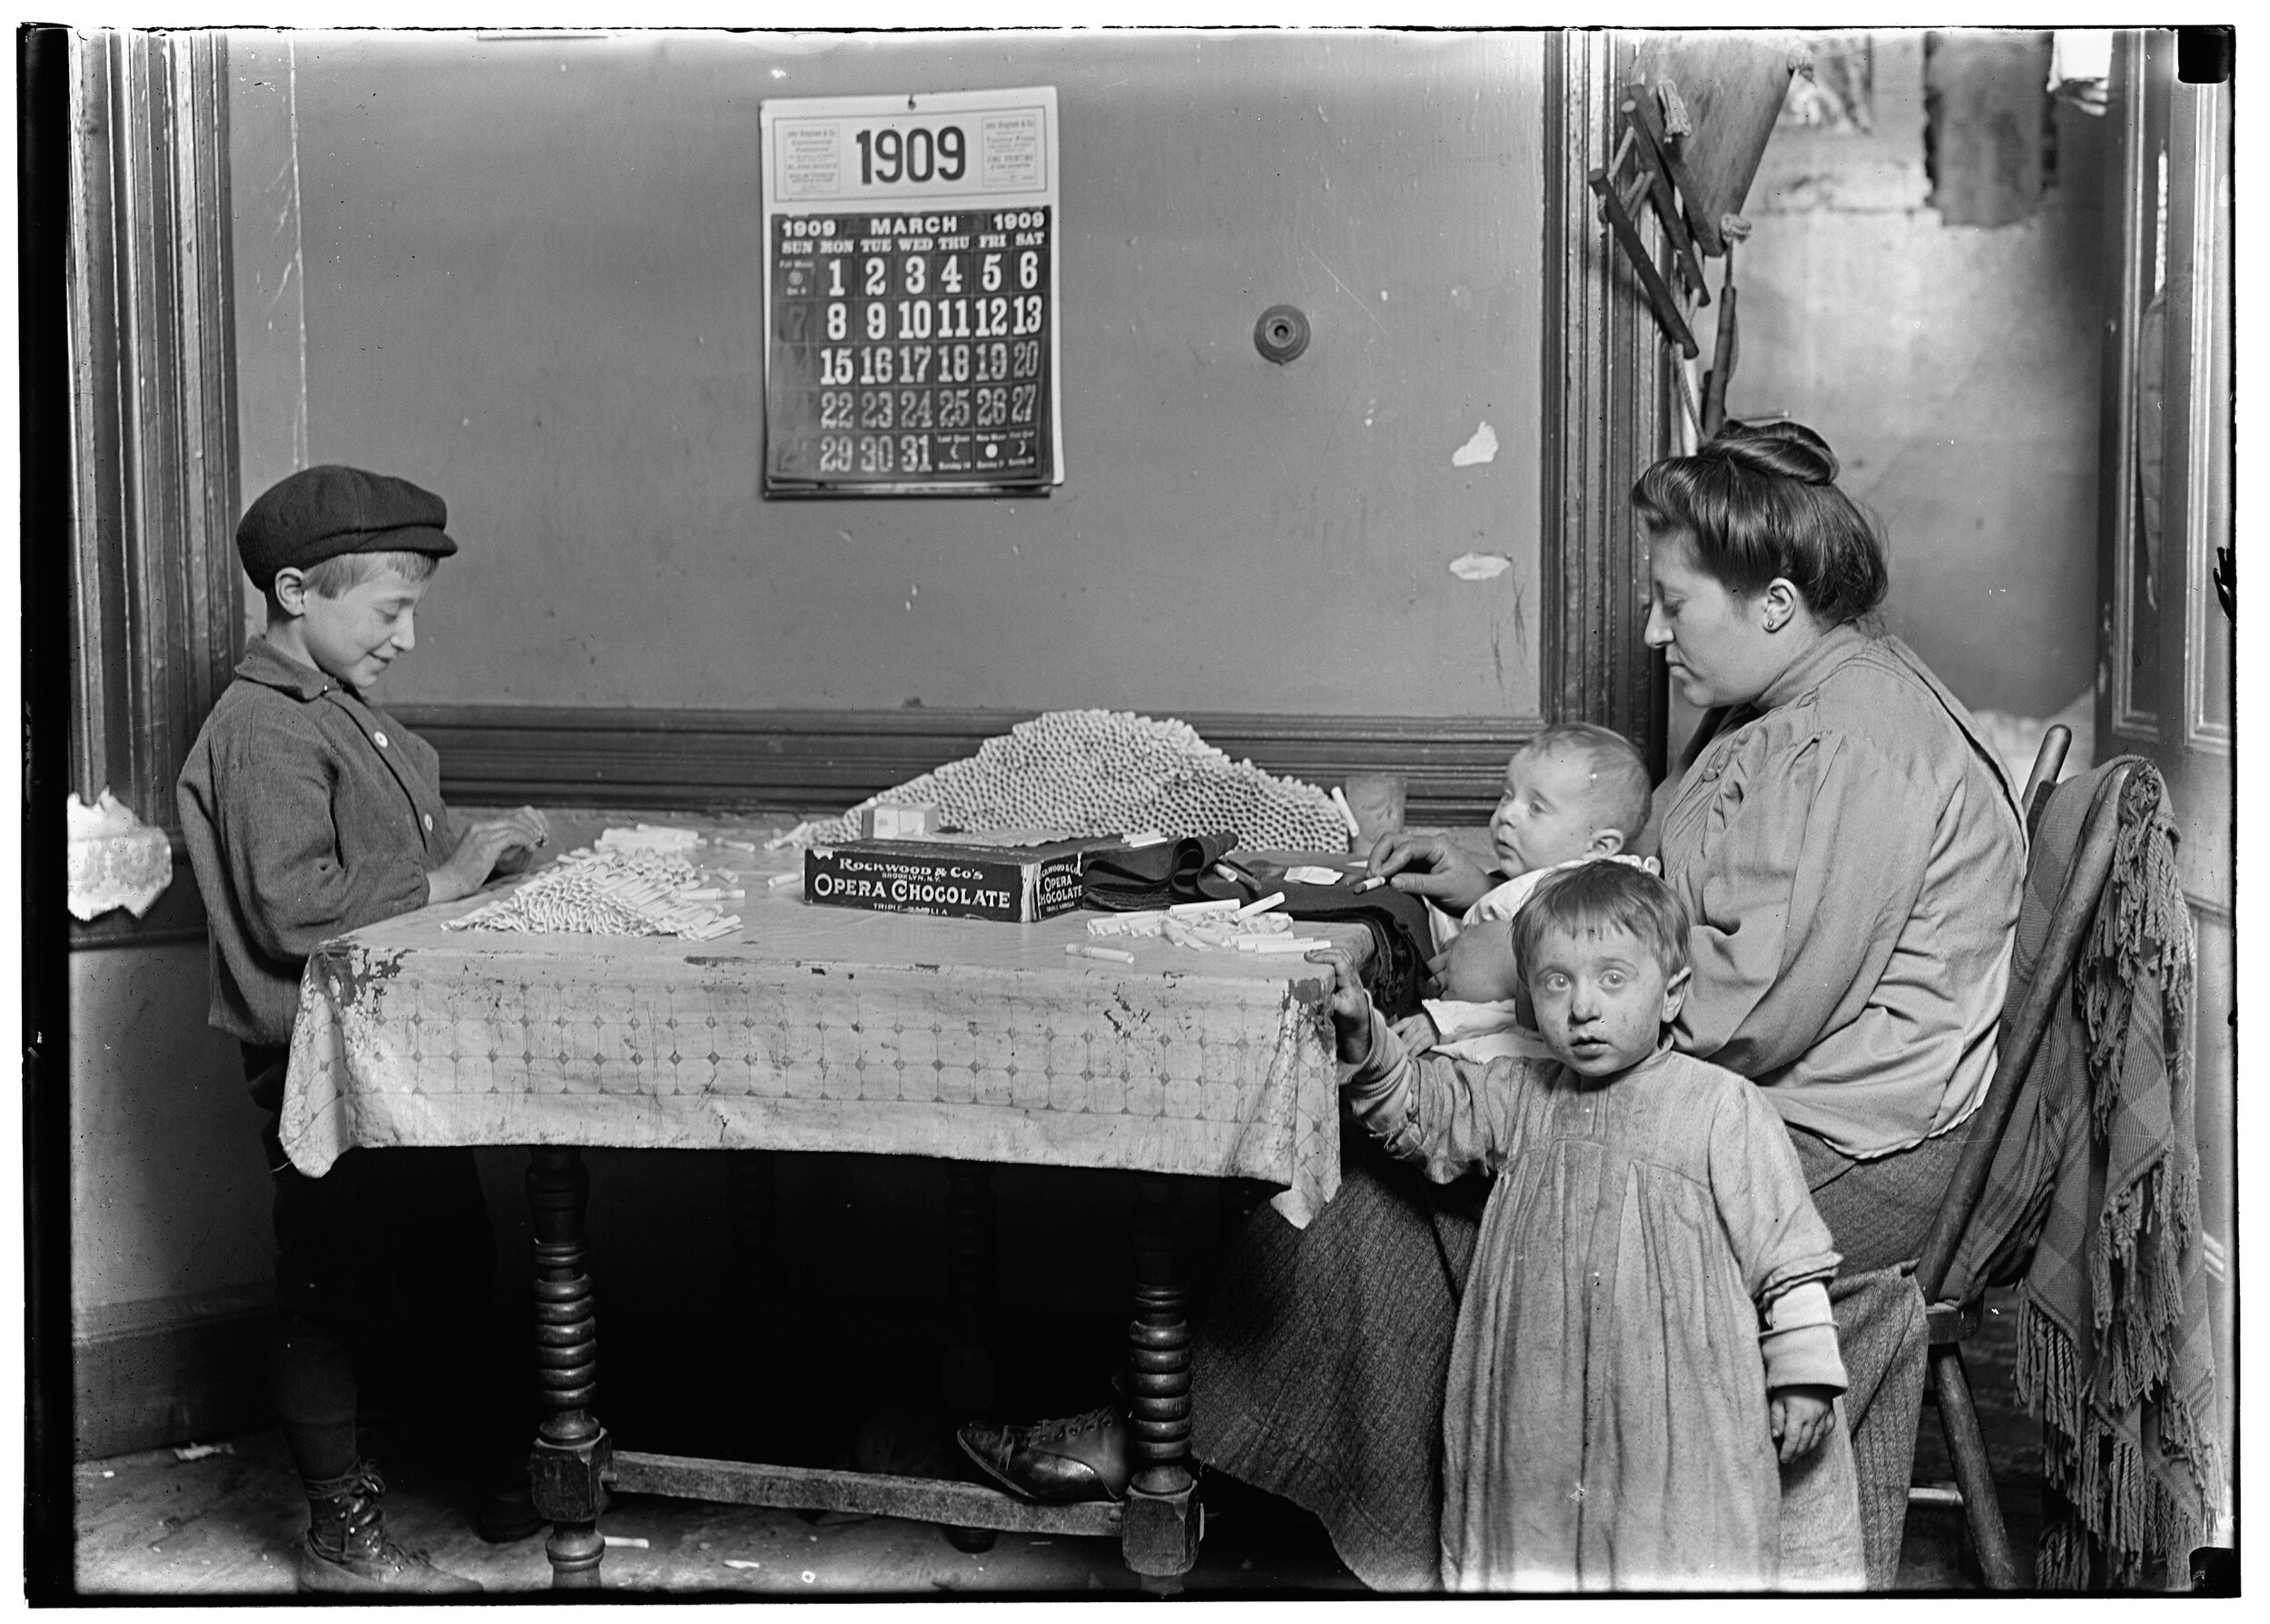 public-domain-images-hine-lewis-national-child-labor-committee-collection-100.jpg